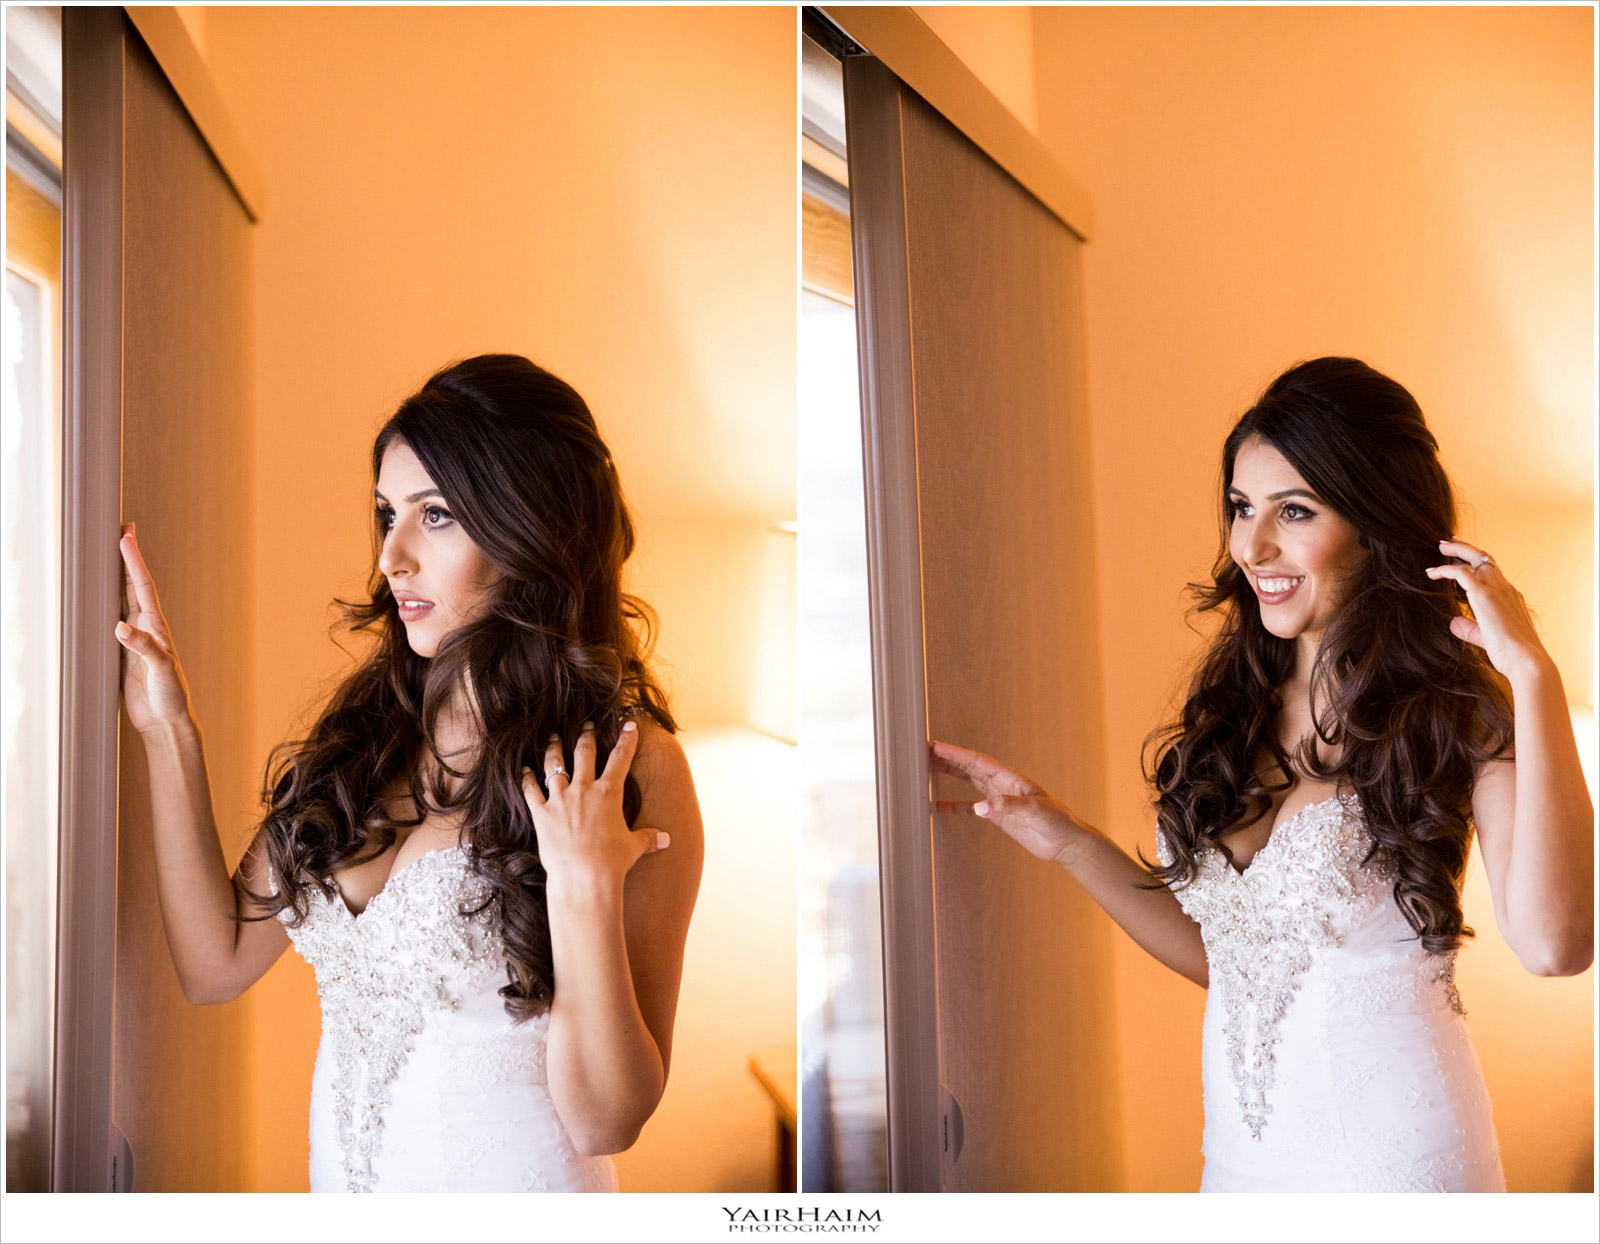 Destination-wedding-photographer-Yair-Haim-9